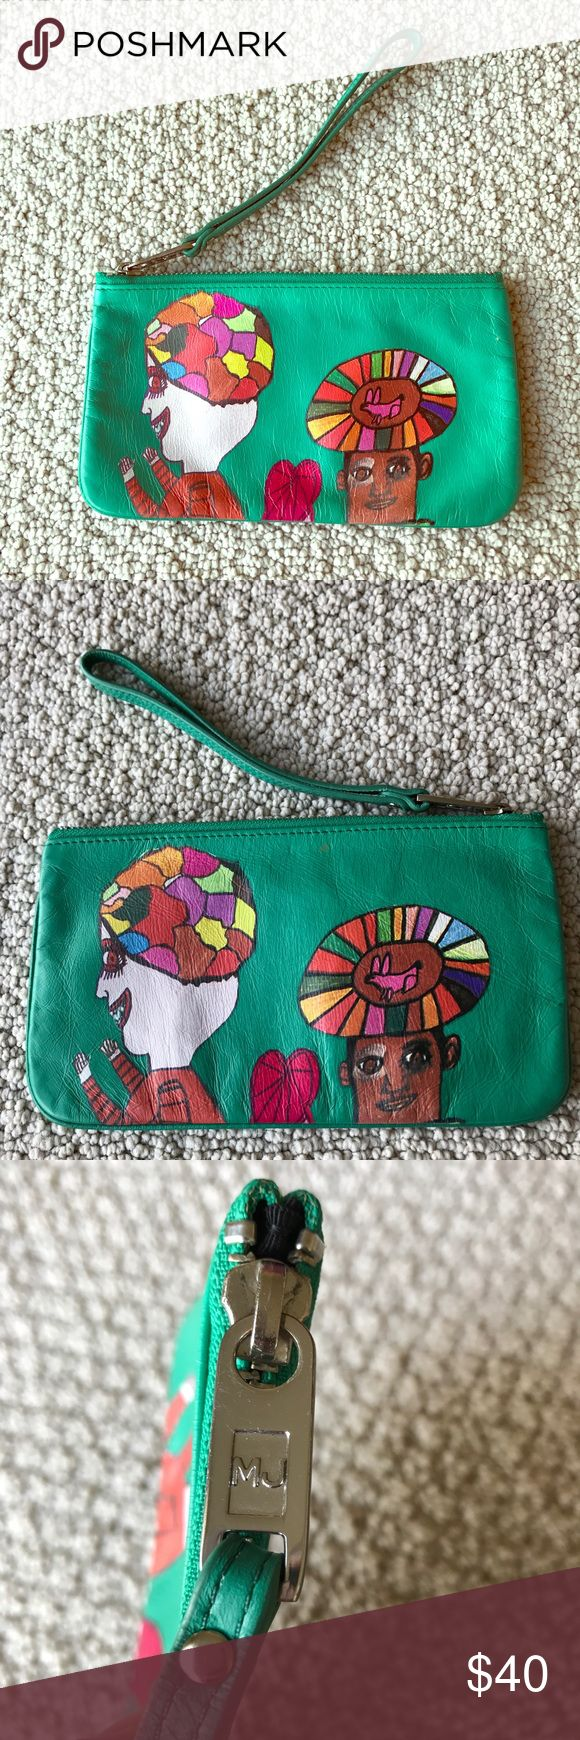 "Marc Jacobs Creative Growth Teal Wristlet Bag So cute and unique! Creative Growth for Marc Jacobs wristlet. Colorful art on a teal leather background. Excellent preworn condition. Rare and made in a collaboration between Creative Growth and Marc Jacobs. Size 8.25"" by 4.75"". No trades, offers welcome. Marc Jacobs Bags Clutches & Wristlets"